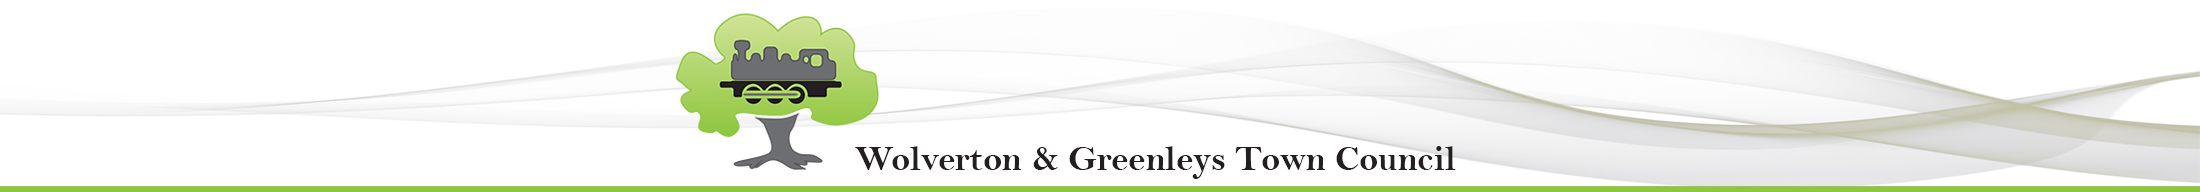 Header Image for Wolverton and Greenleys TC